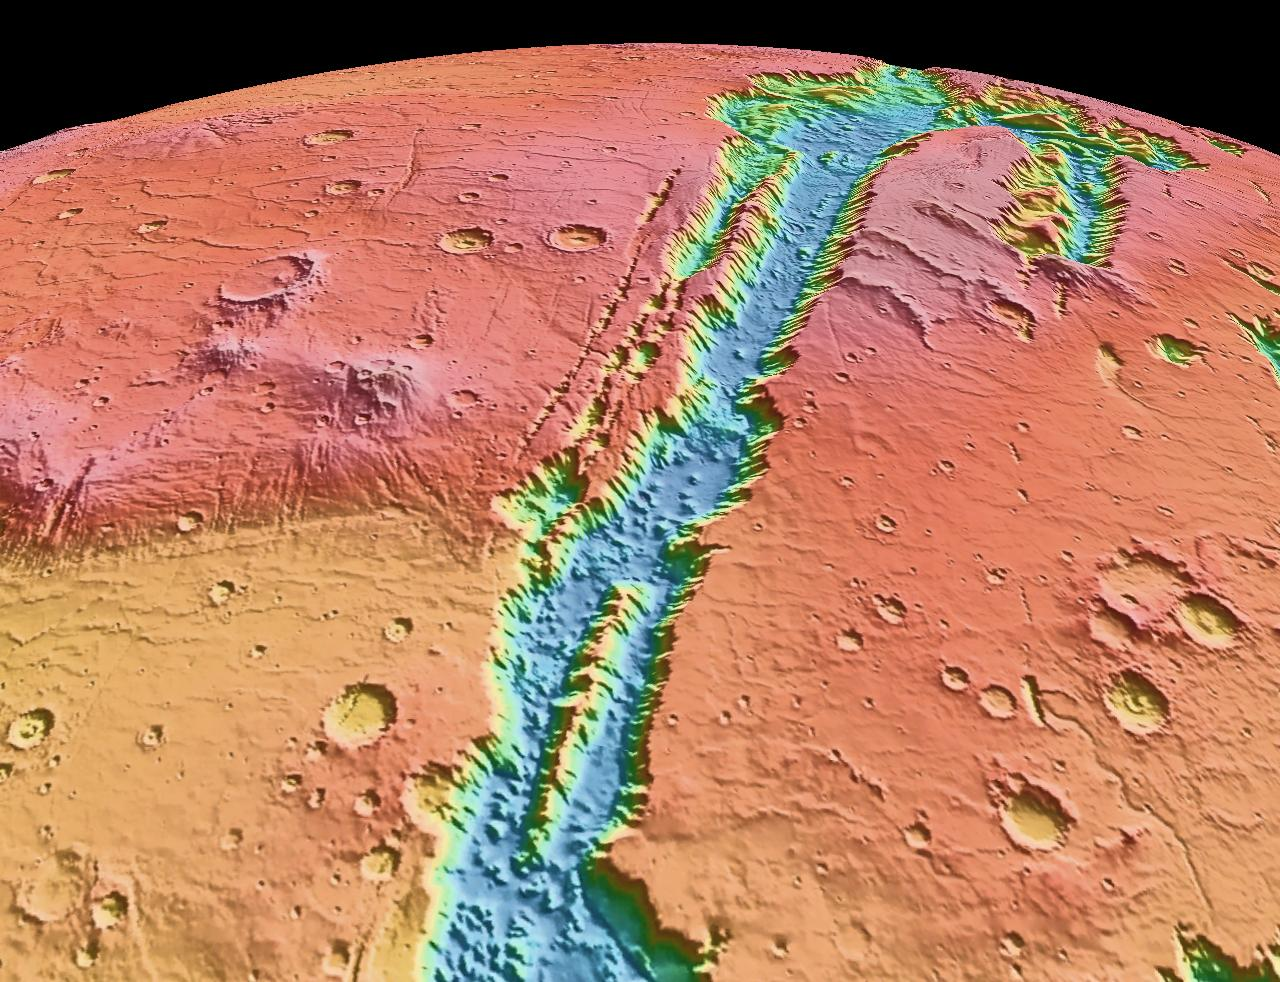 Valles_Marineris_NASA_World_Wind_map_Mars.jpg